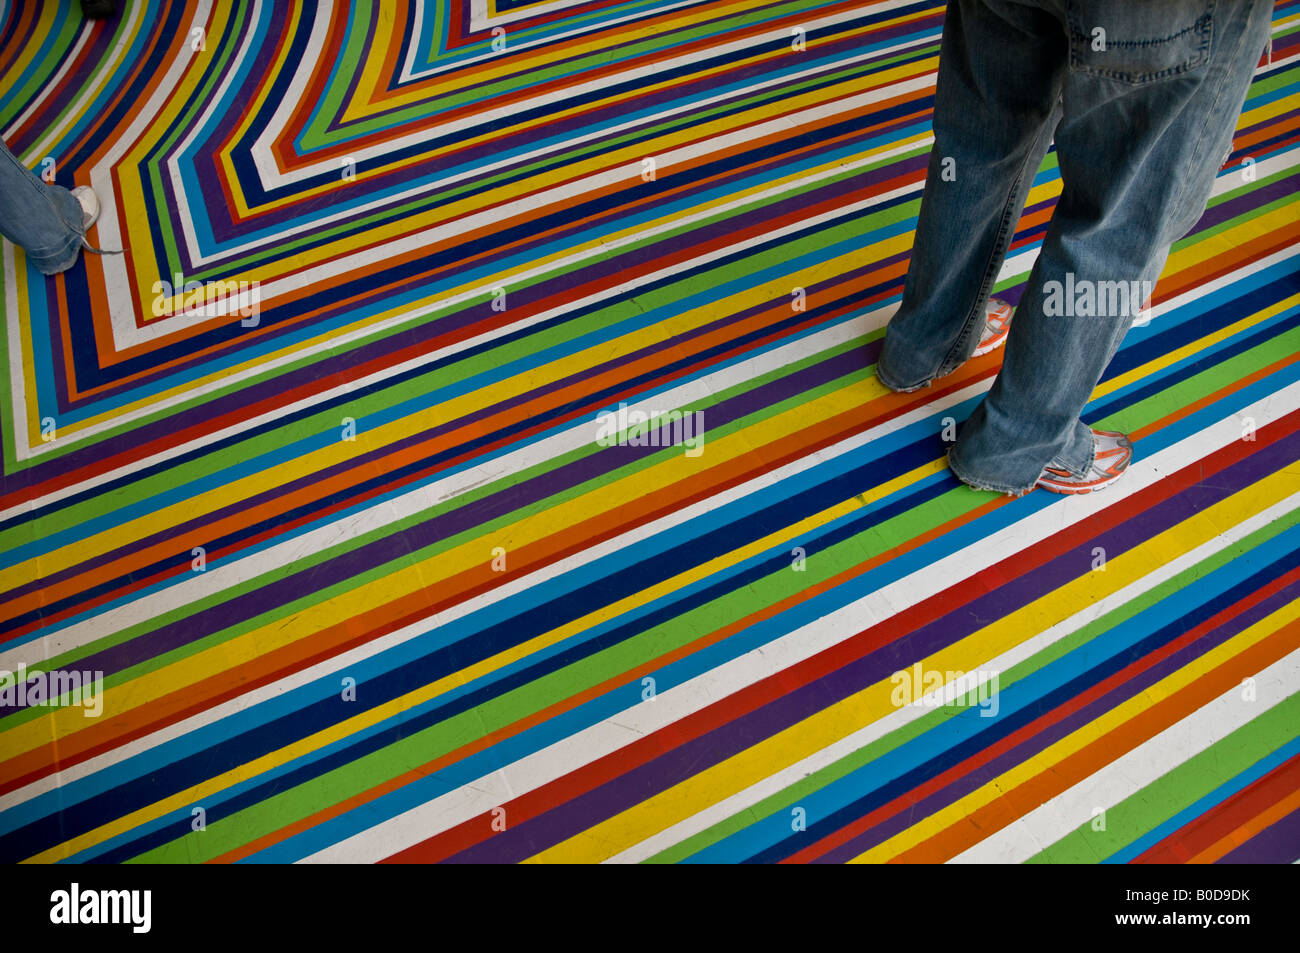 Multi colored stripes on the ground floor at Museum of Modern Art in New York - Stock Image